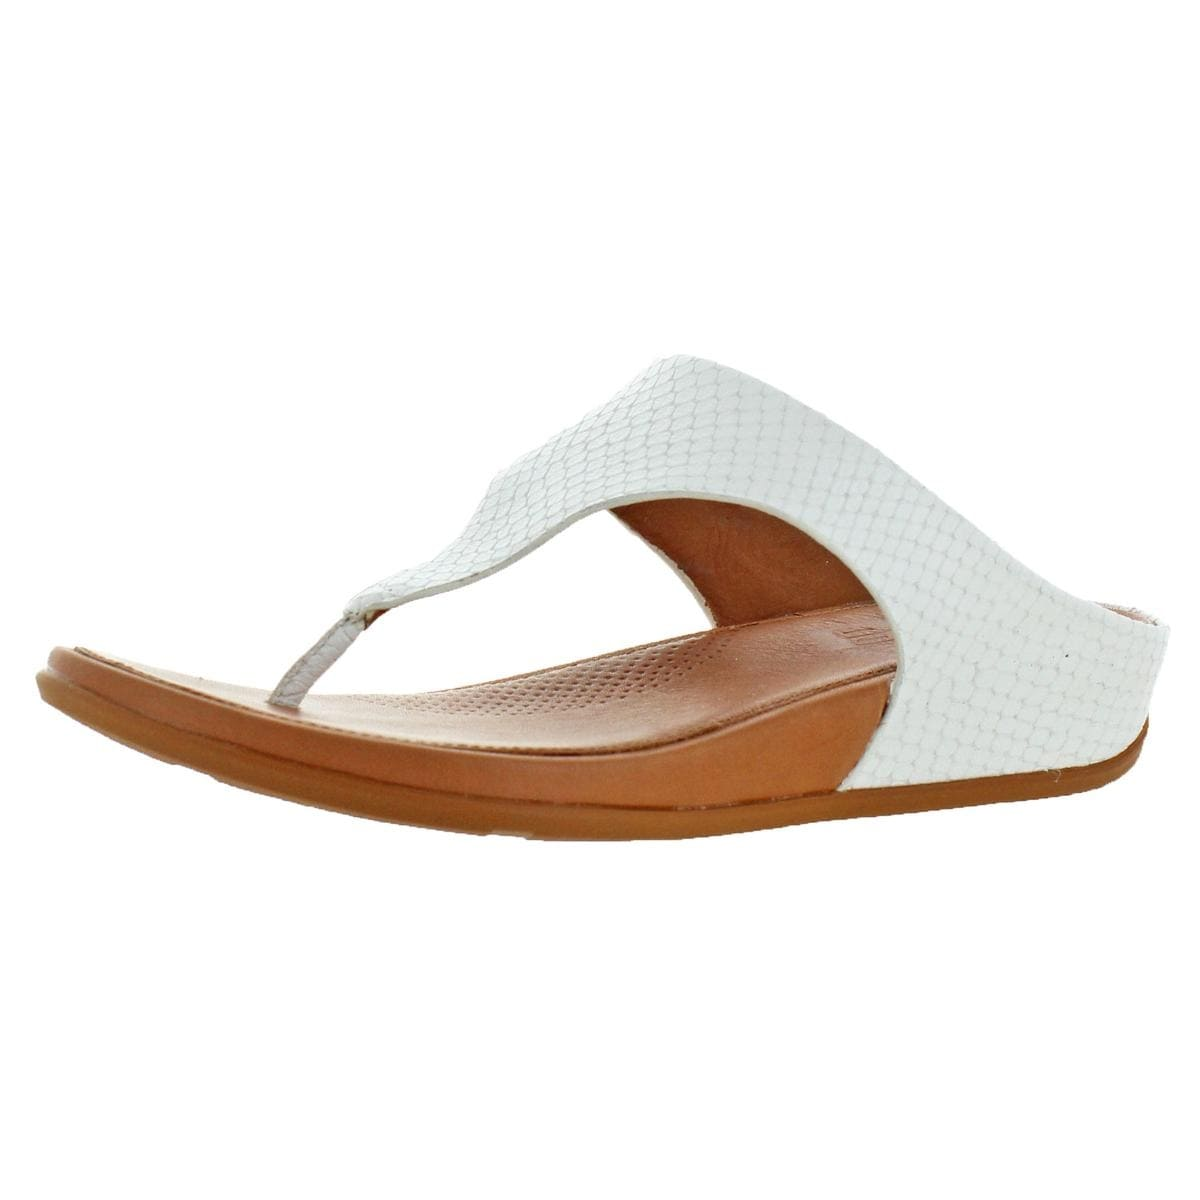 57bd3d26dd050 Shop Fitflop Womens Banda Thong Sandals Wedge - Free Shipping Today -  Overstock - 26030208